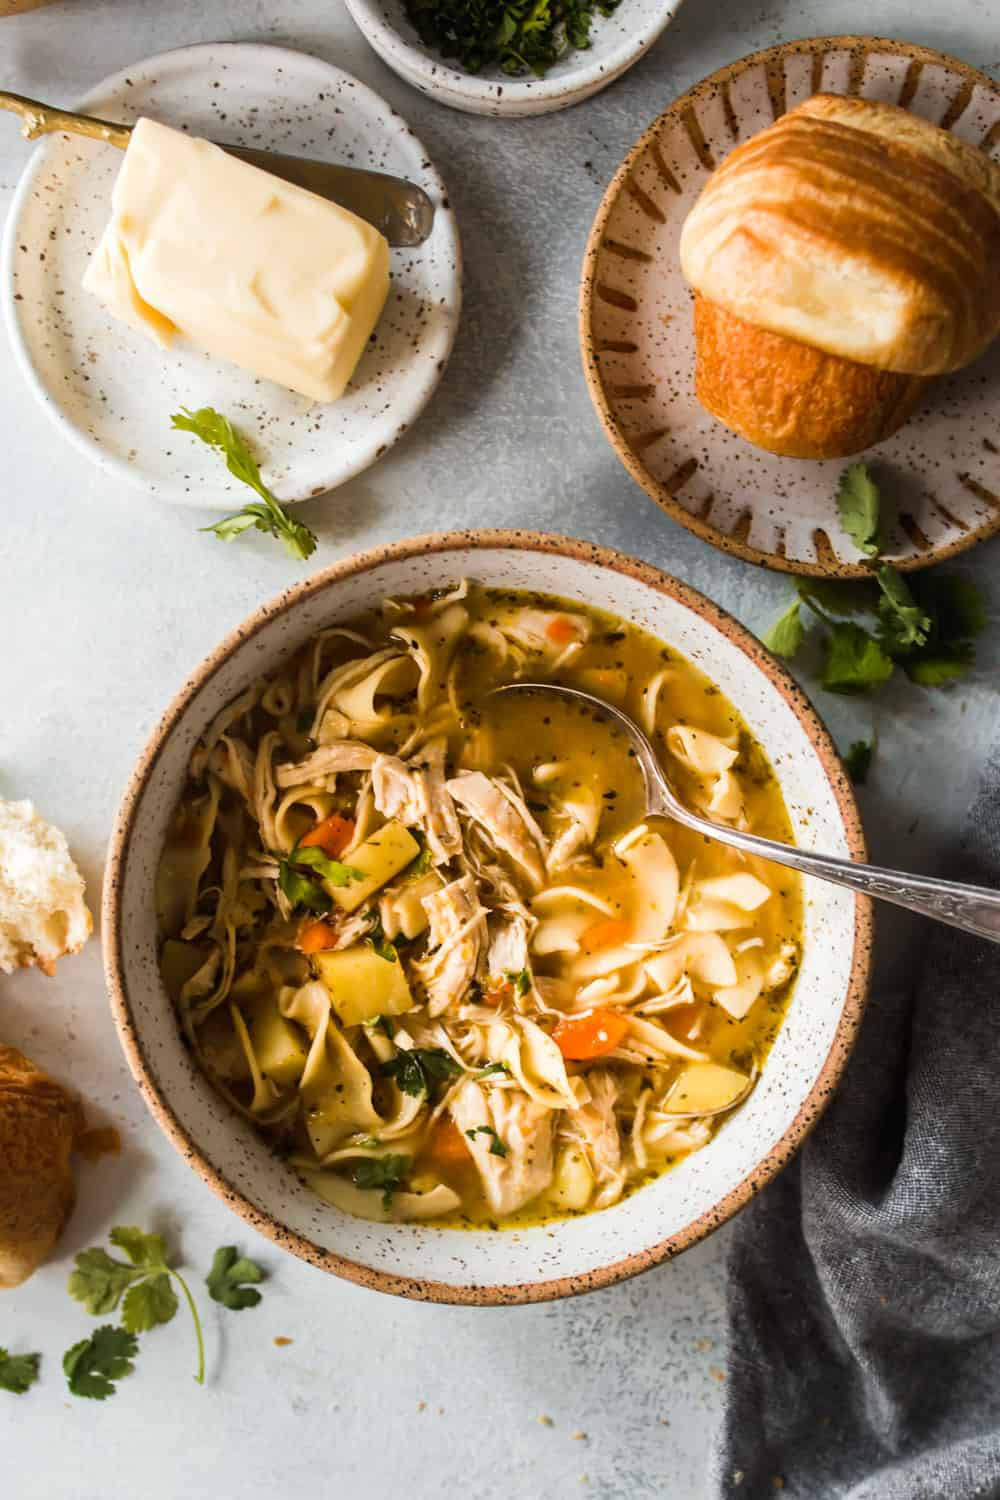 Large white and brown bowl with a spoon and chicken noodle soup